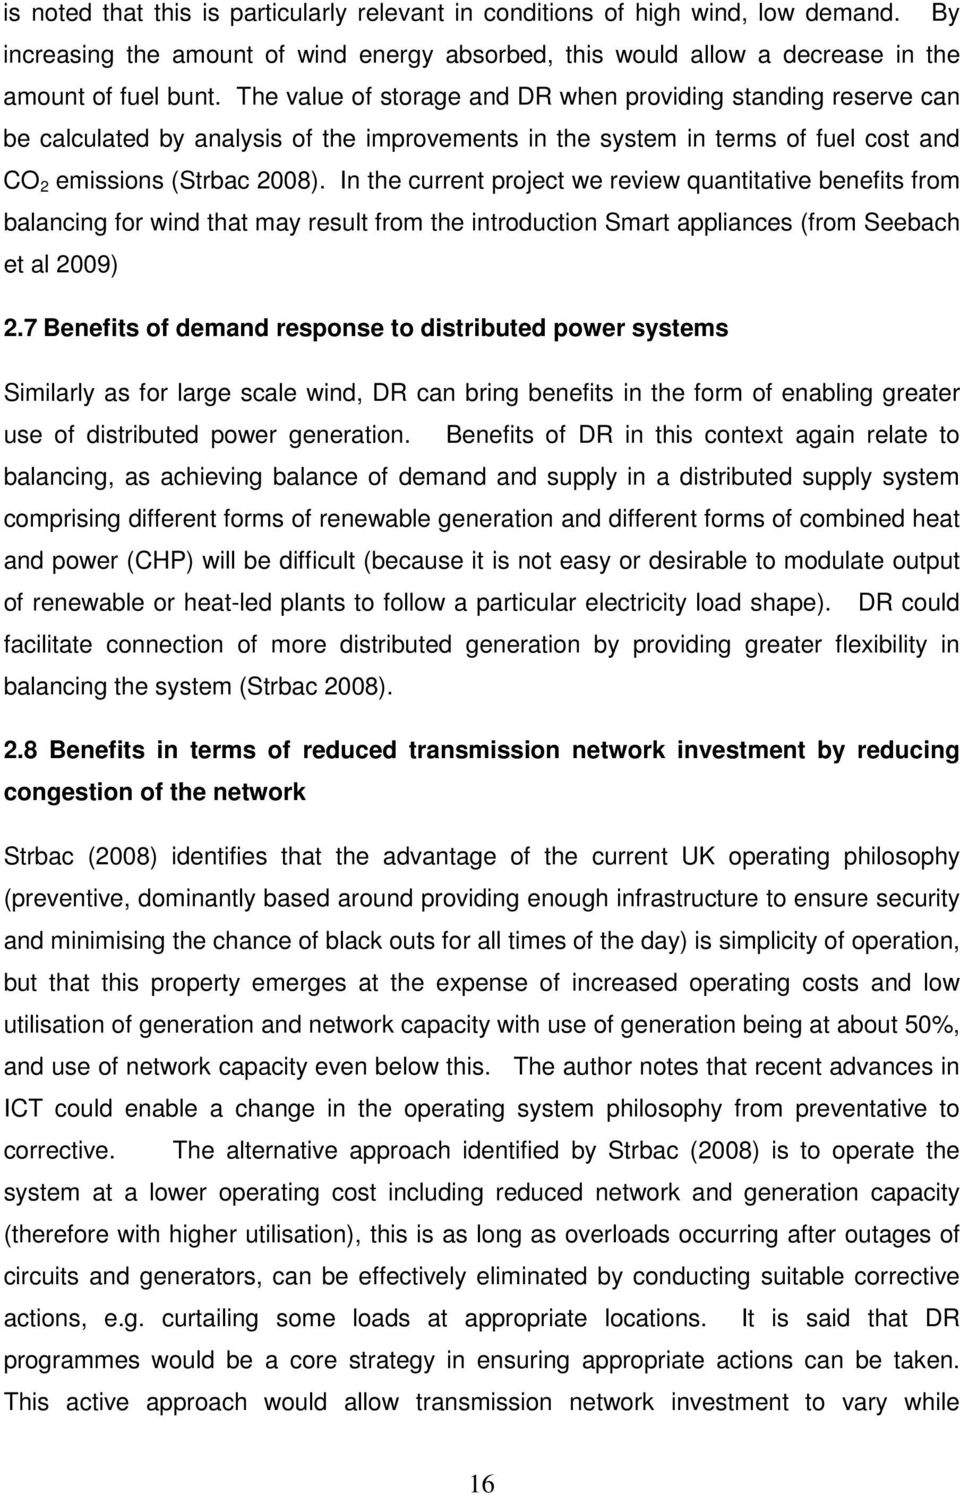 In the current project we review quantitative benefits from balancing for wind that may result from the introduction Smart appliances (from Seebach et al 2009) 2.